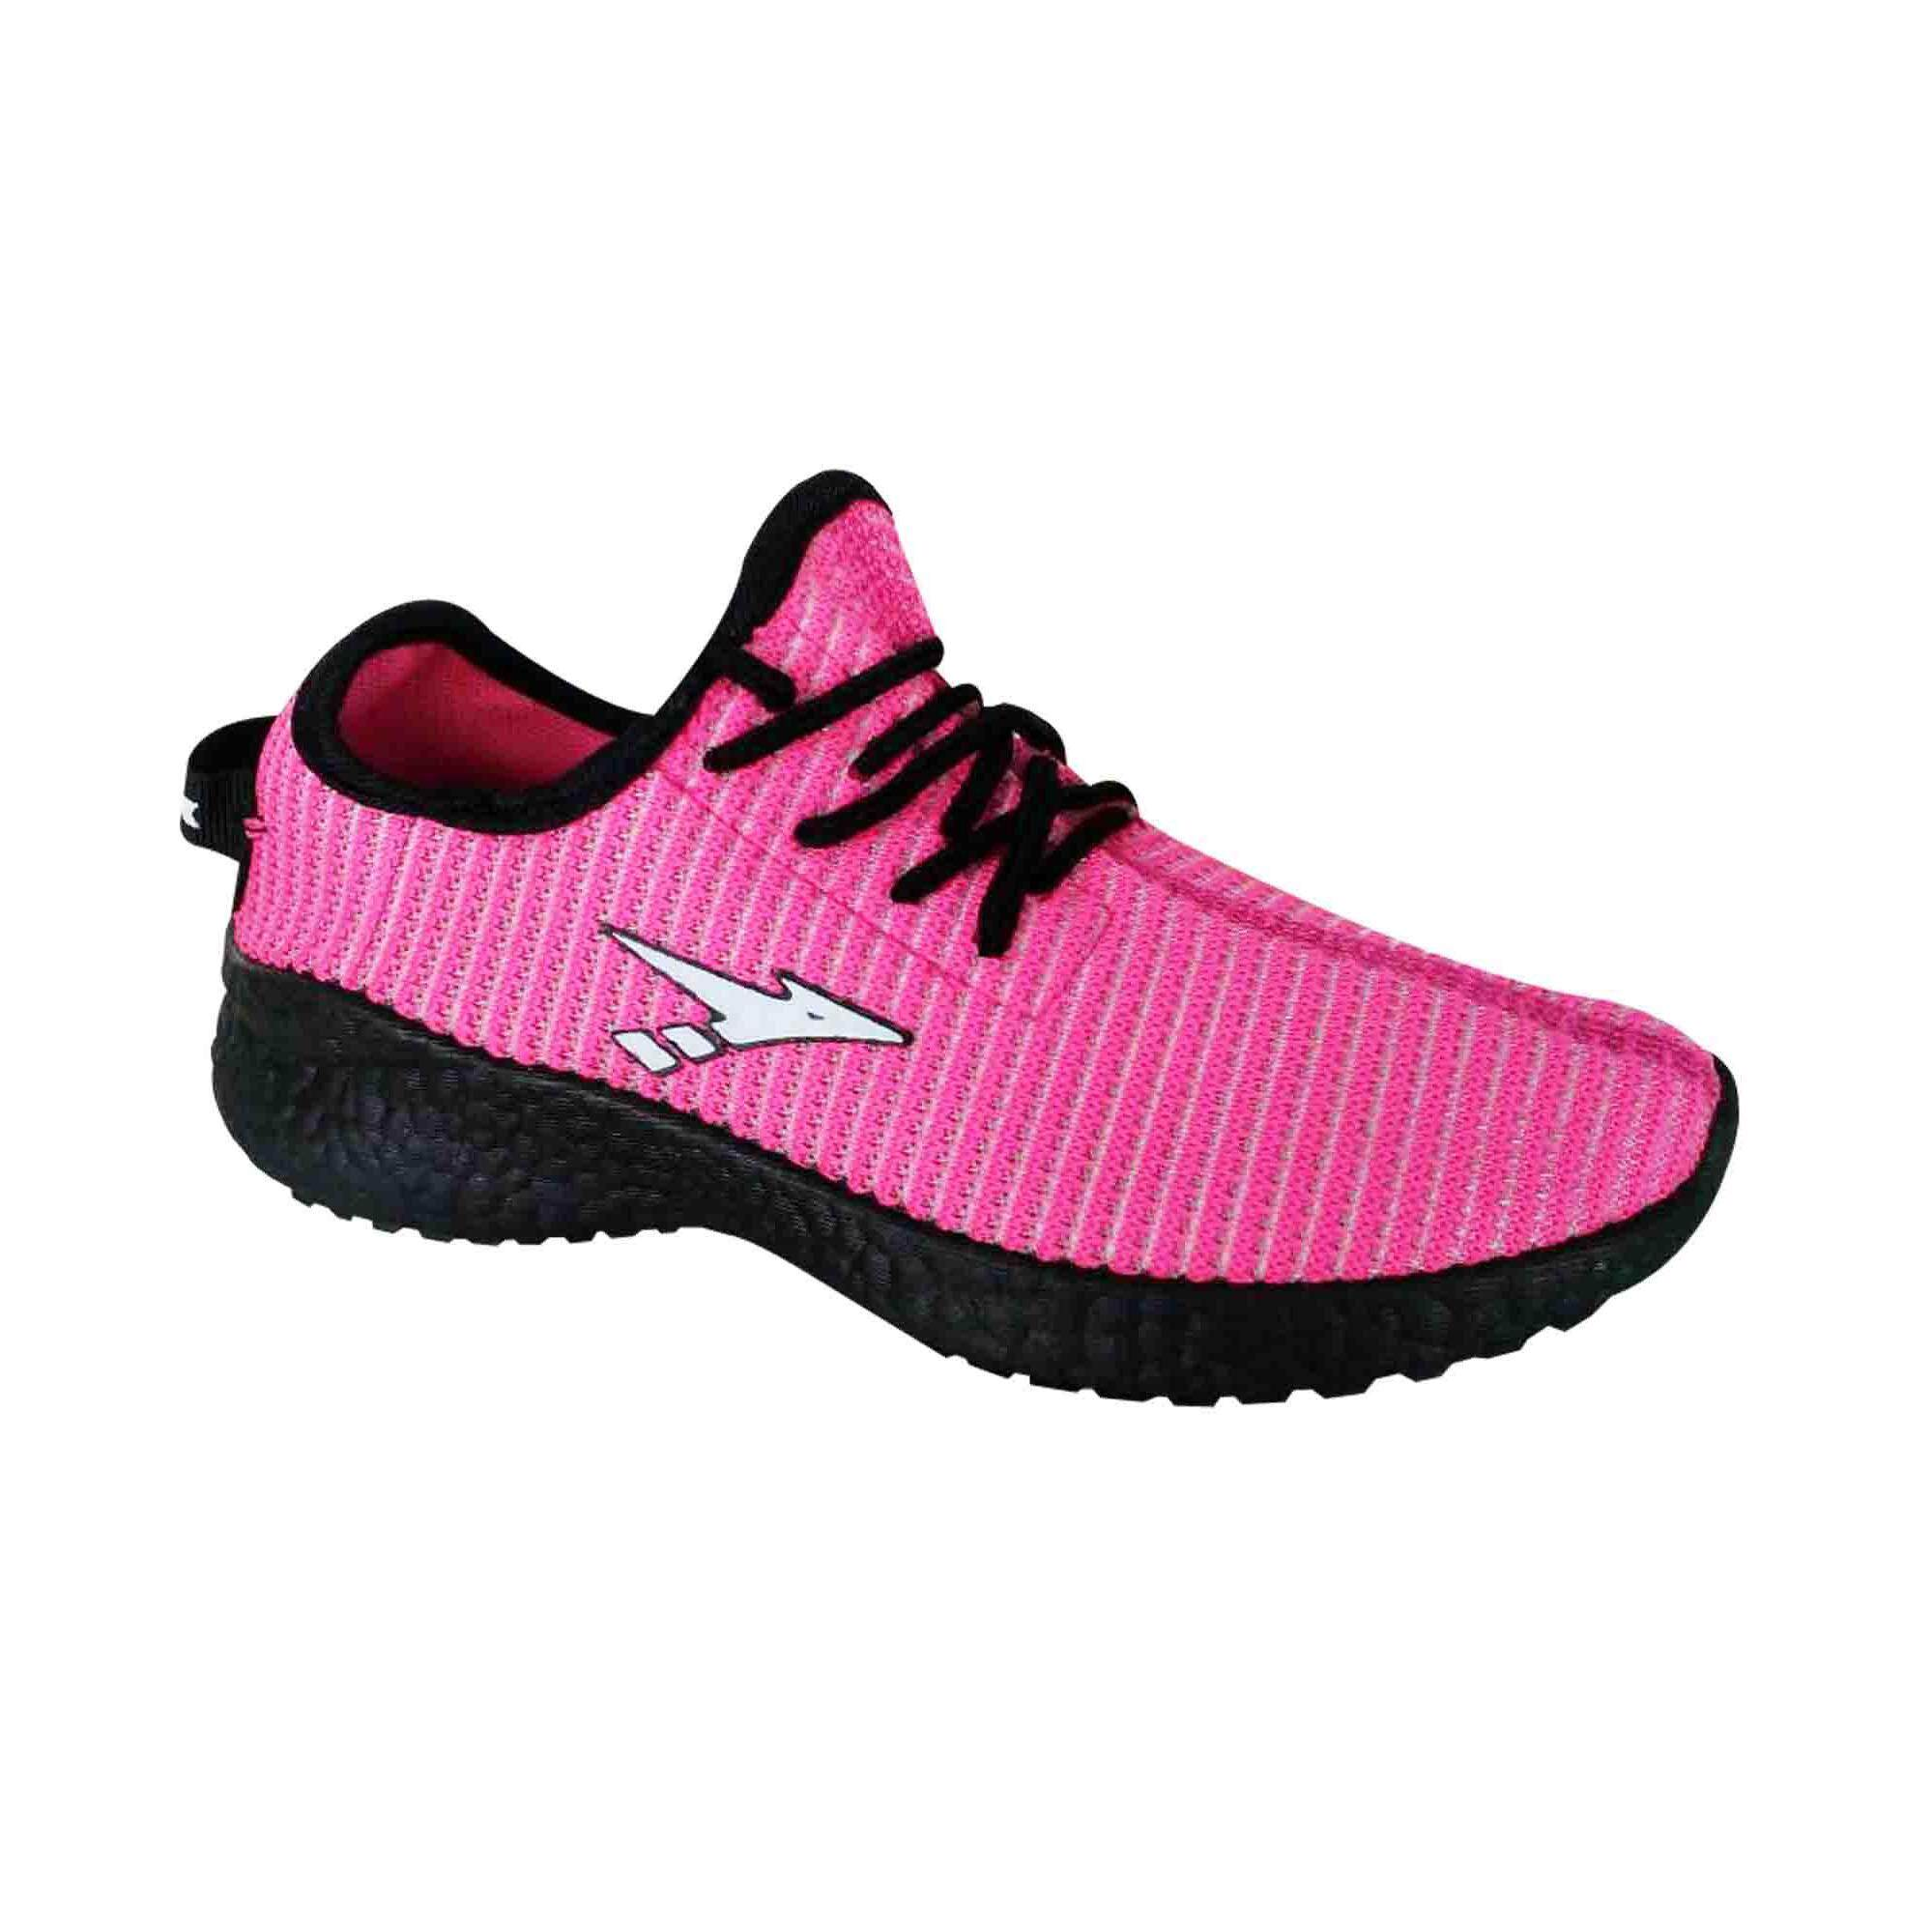 Amsdex Racer Sneakers for Women - Pink/Black